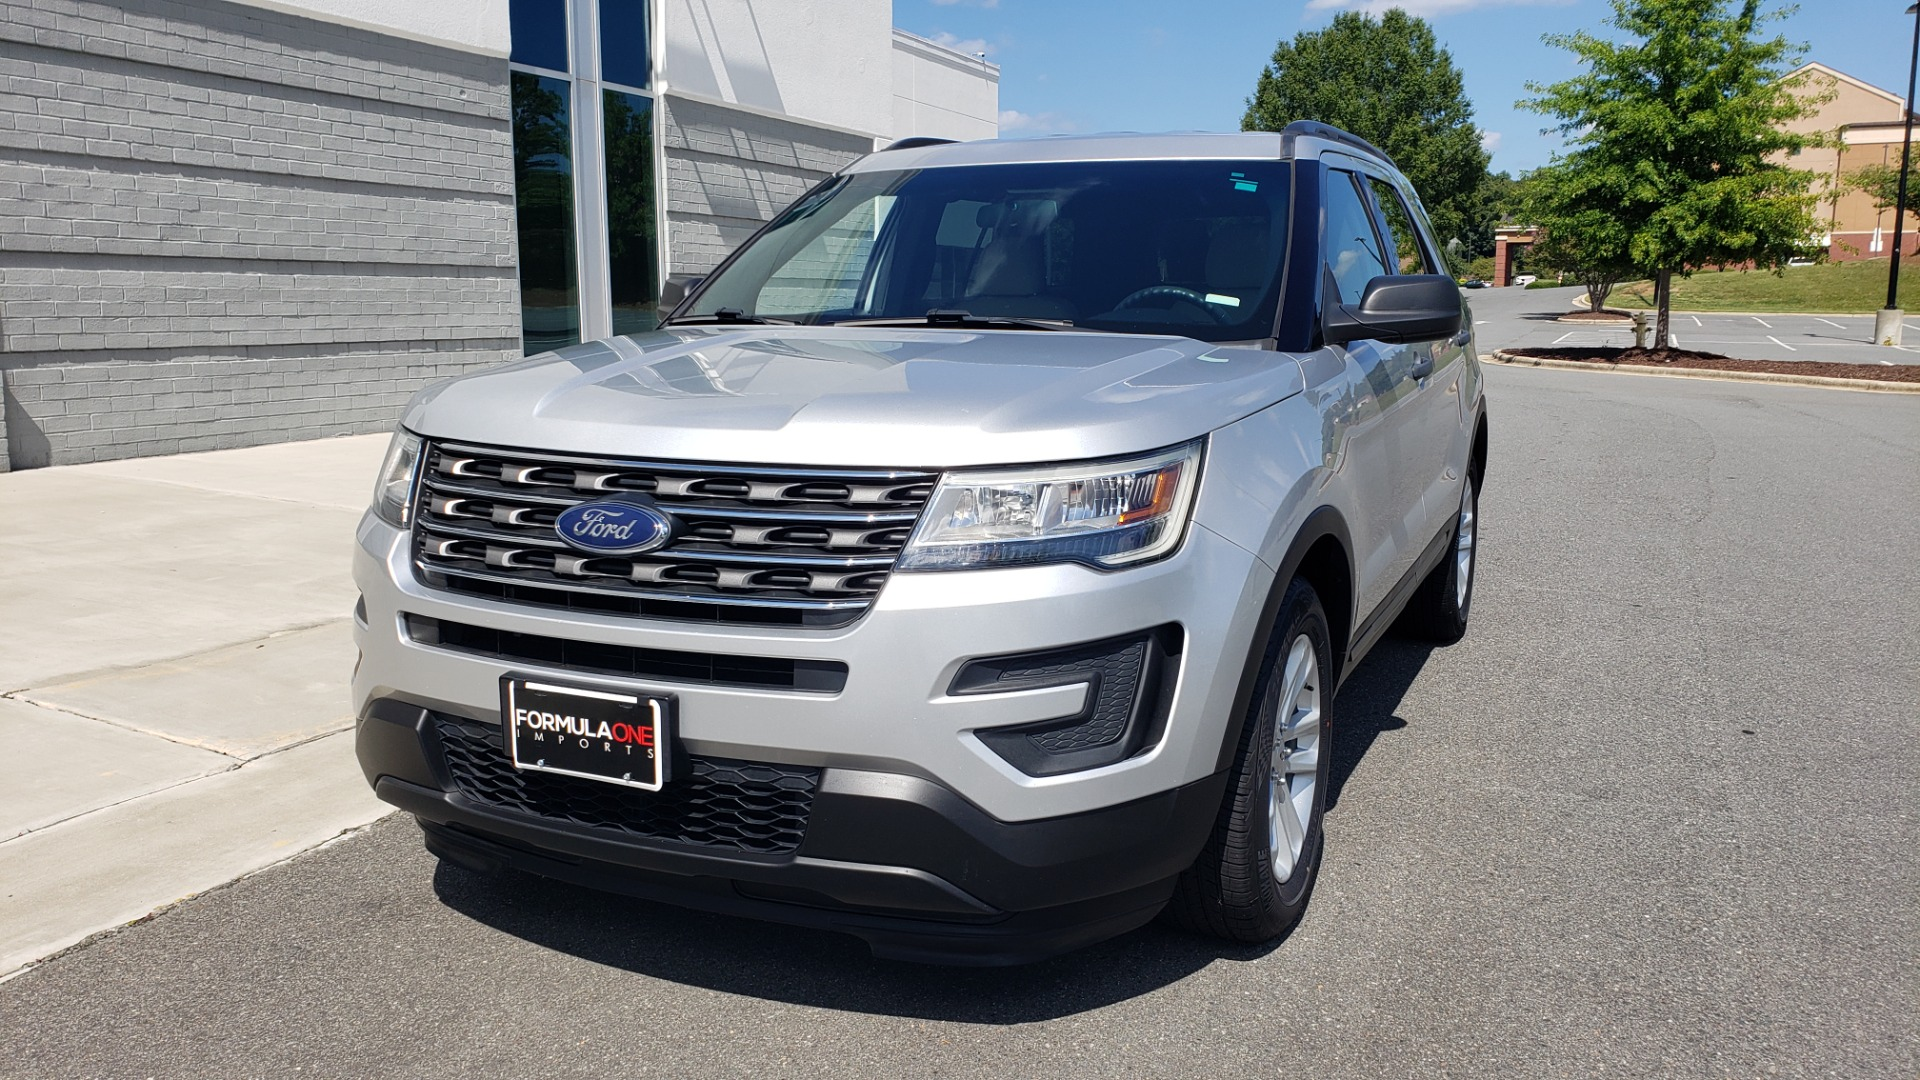 Used 2017 Ford EXPLORER 3.5L V6 / 6-SPD AUTO / BLIND SPOT MONITOR / 3-ROW / SYNC / REARVIEW for sale $22,995 at Formula Imports in Charlotte NC 28227 3